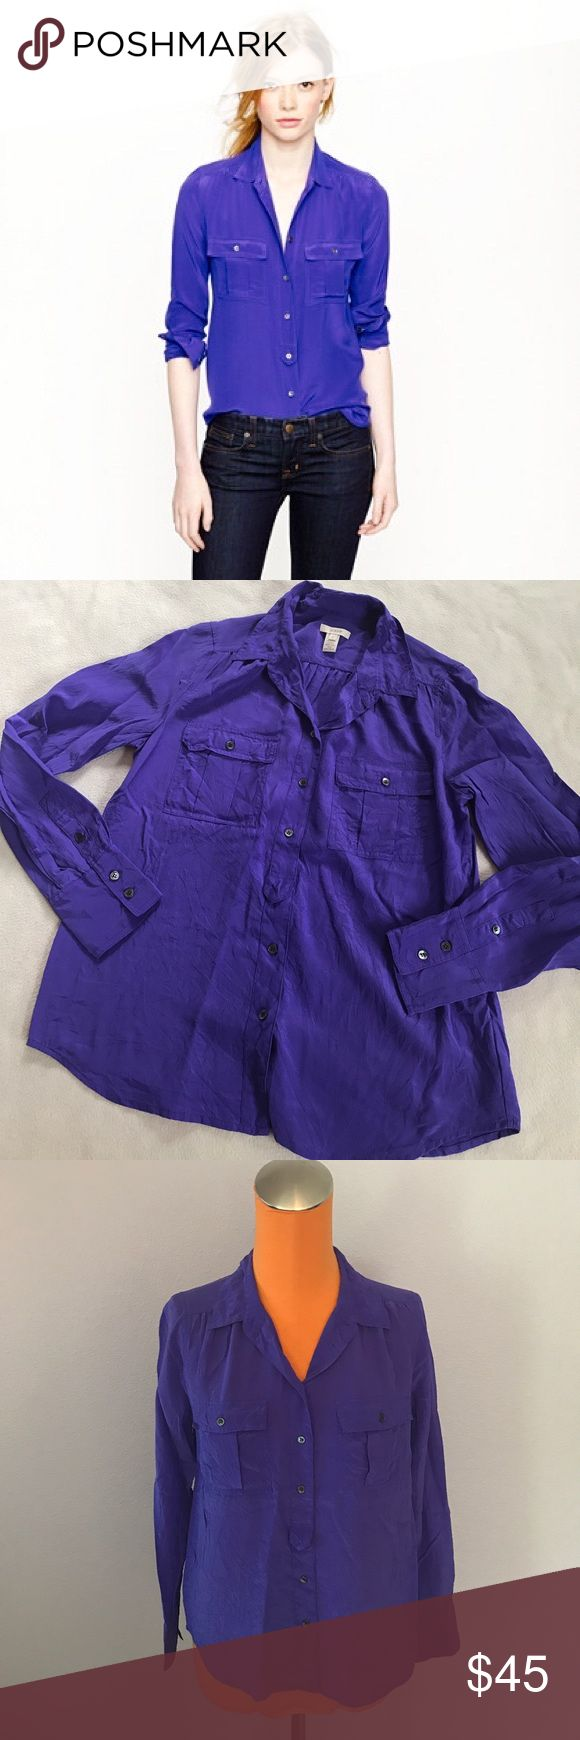 """J Crew Purple Blythe Silk Crepe Blouse 24.5"""" length 19.5"""" armpit to armpit. Is a purple color. 100% silk.  Crepe like material. Has chest pockets. Blythe silk blouse. Just needs a good steam. Excellent condition. Bundle 2+ items for a discount. J. Crew Tops Blouses"""